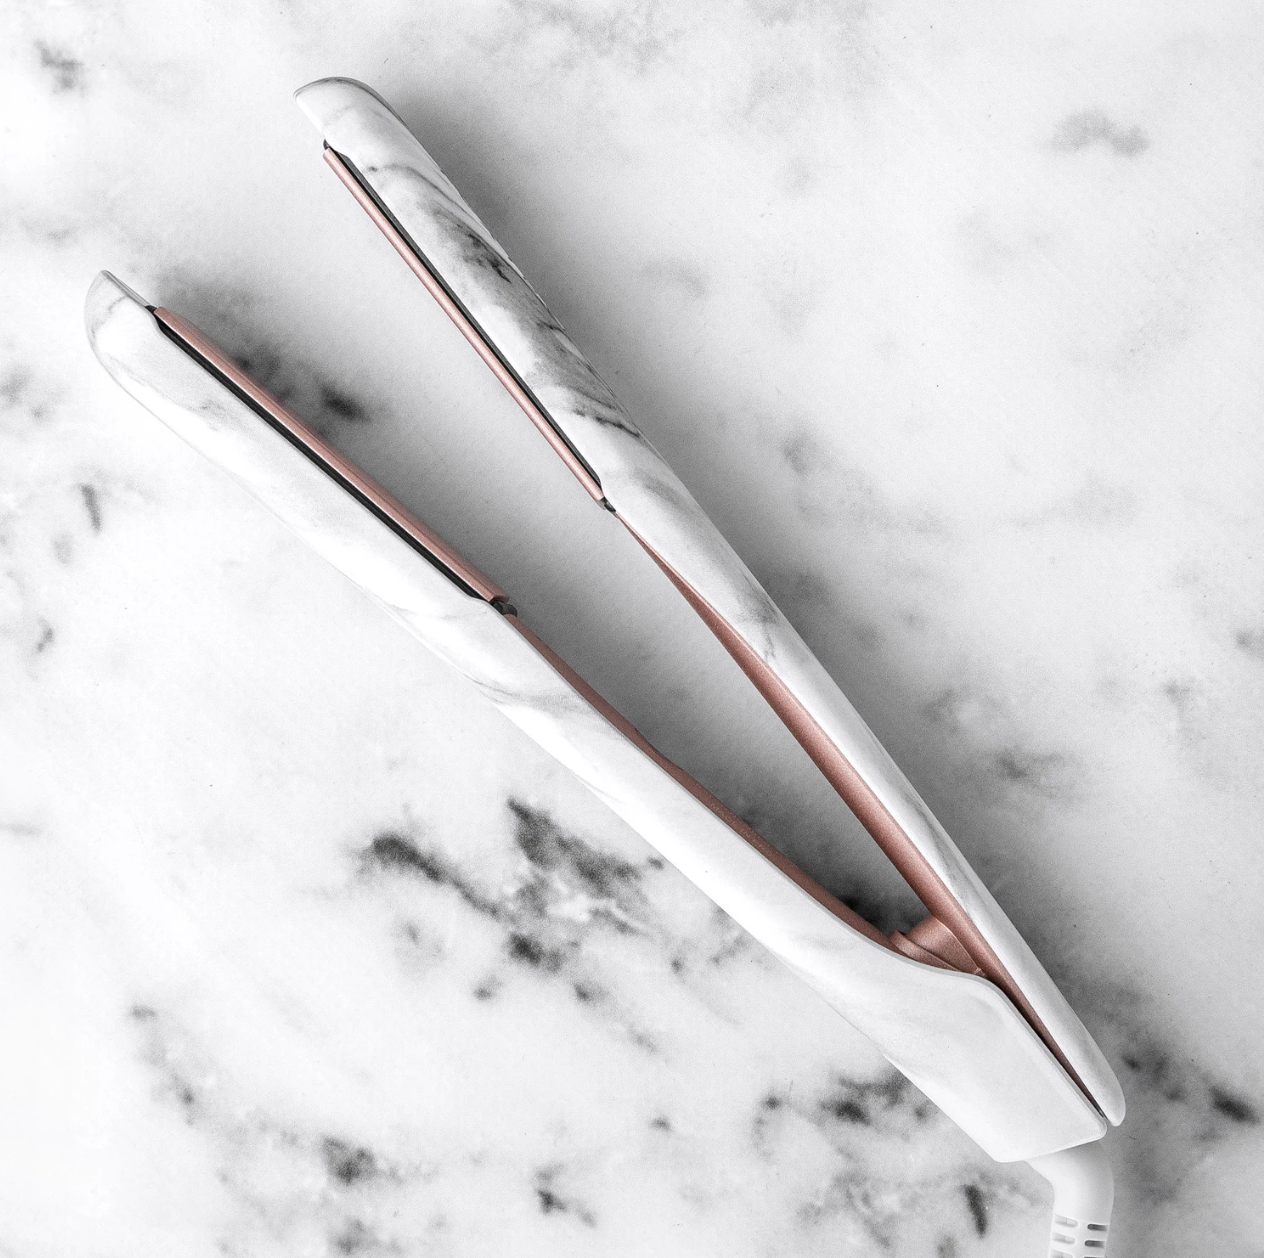 The white and gray marble straightener with rose gold plates